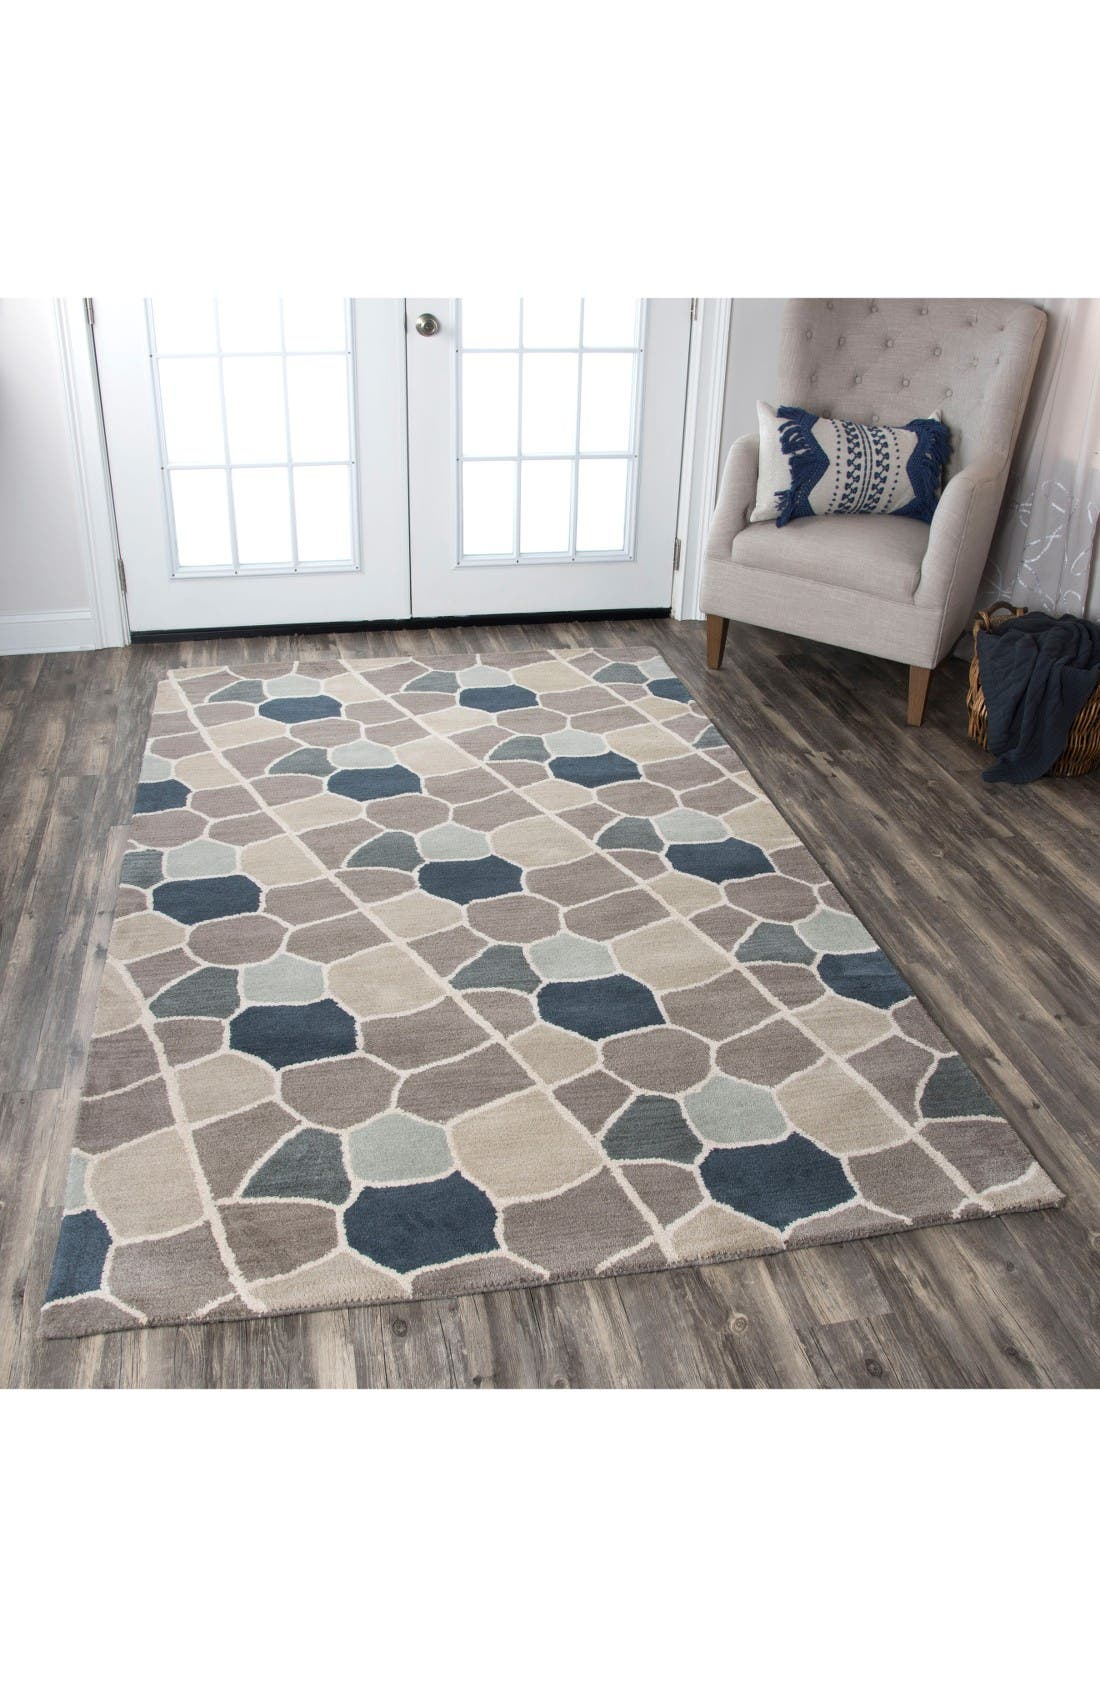 Cobble Geo Hand Tufted Wool Area Rug,                             Alternate thumbnail 5, color,                             Grey/ Blue